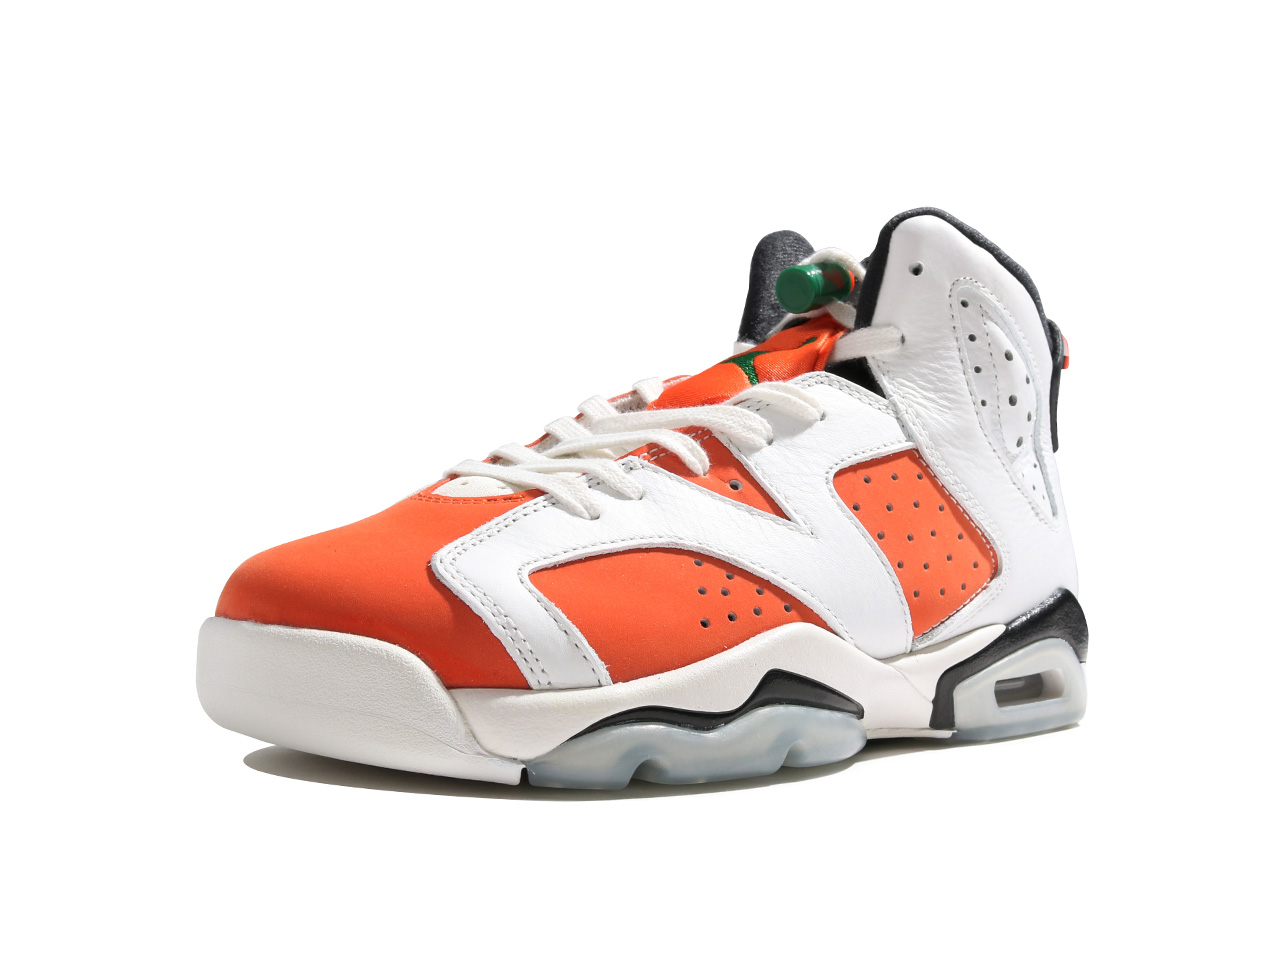 nike_air_jordan_6_retro_bg_384665_145